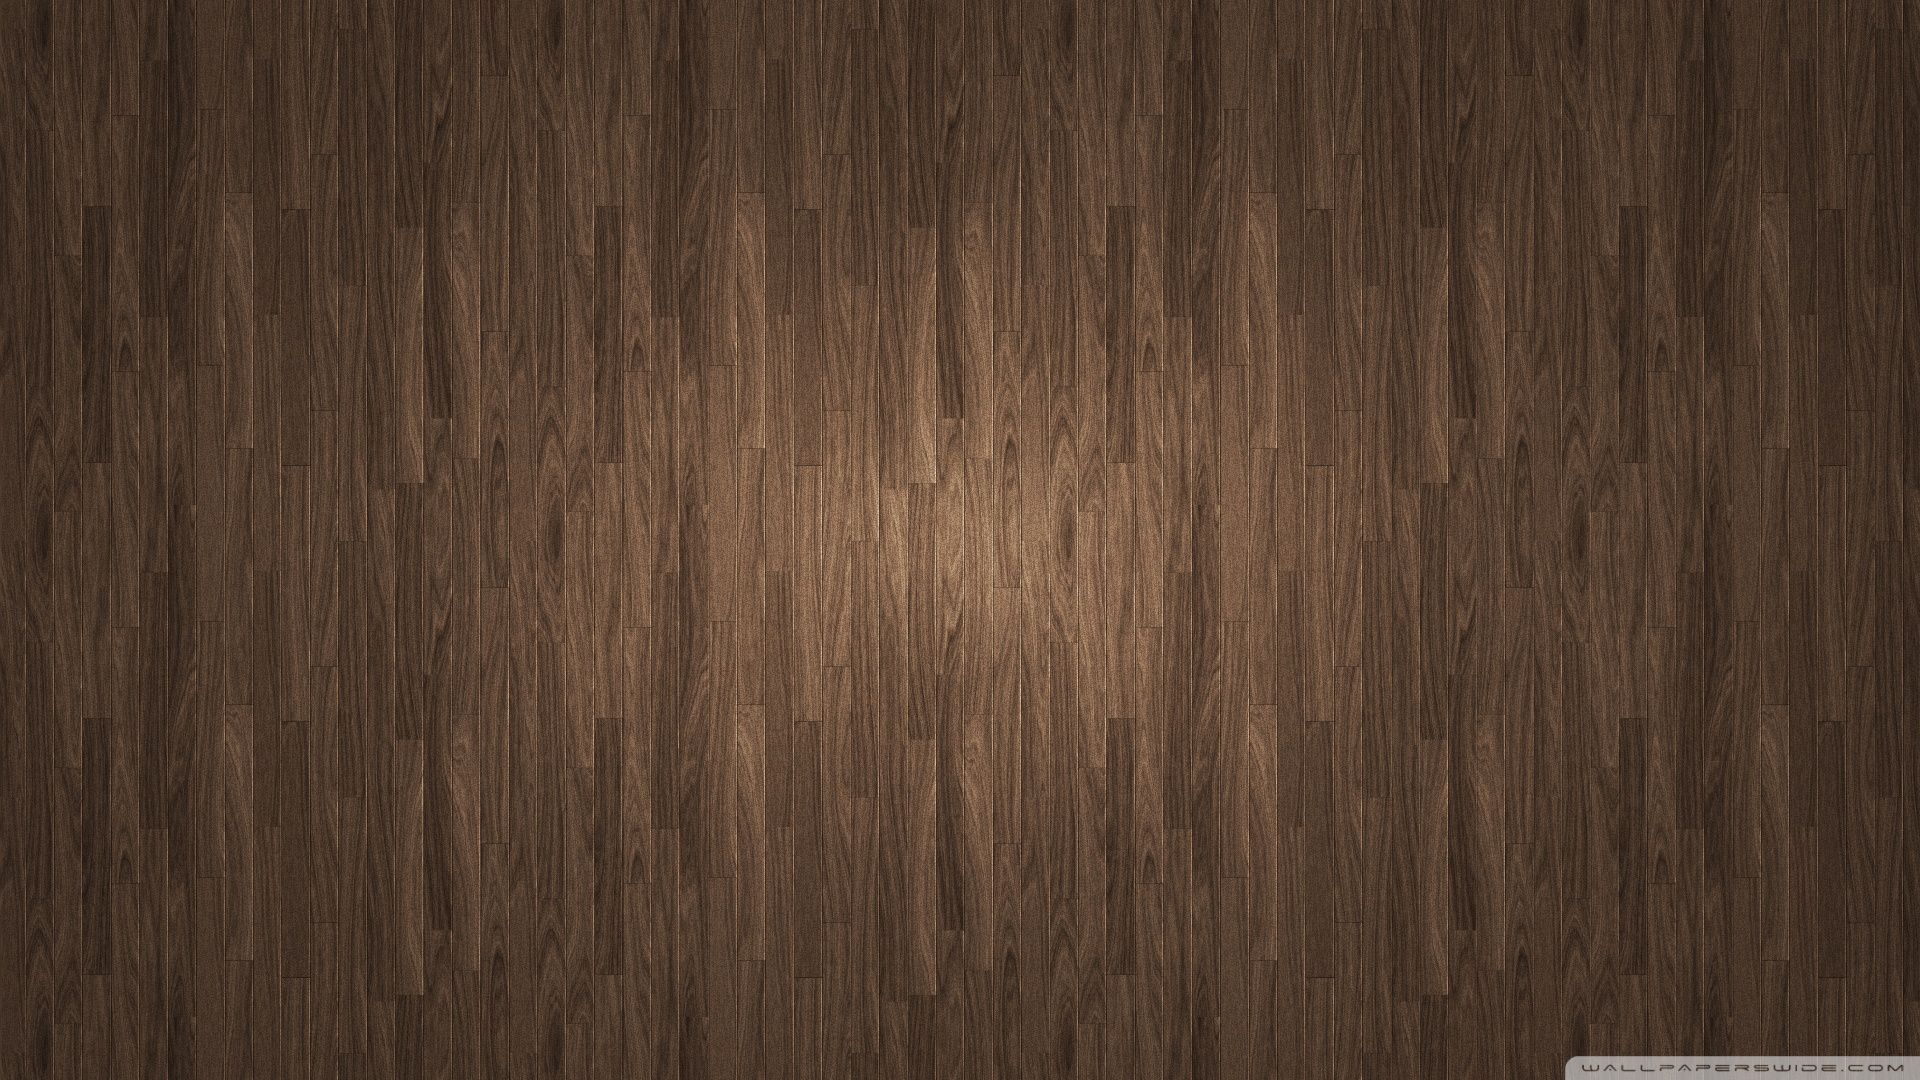 Download-x-Wood-Background-Texture-Ultra-HD-K-wallpaper-wpc9004511